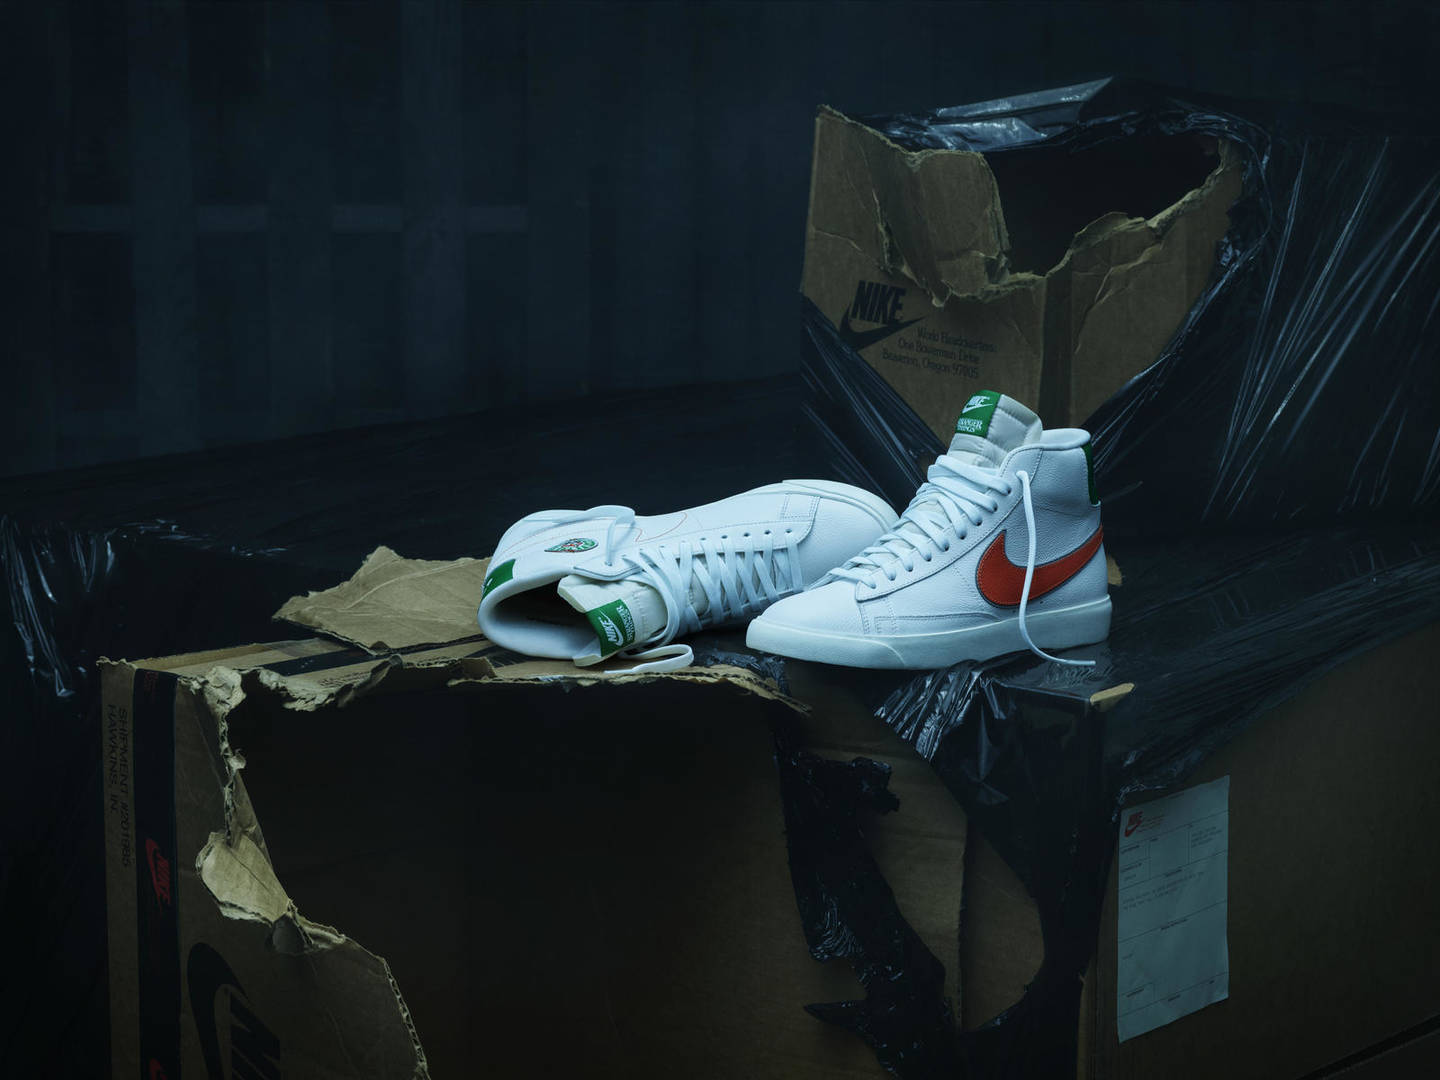 Nike x Stranger Things Collab Drops Today: Purchase Links